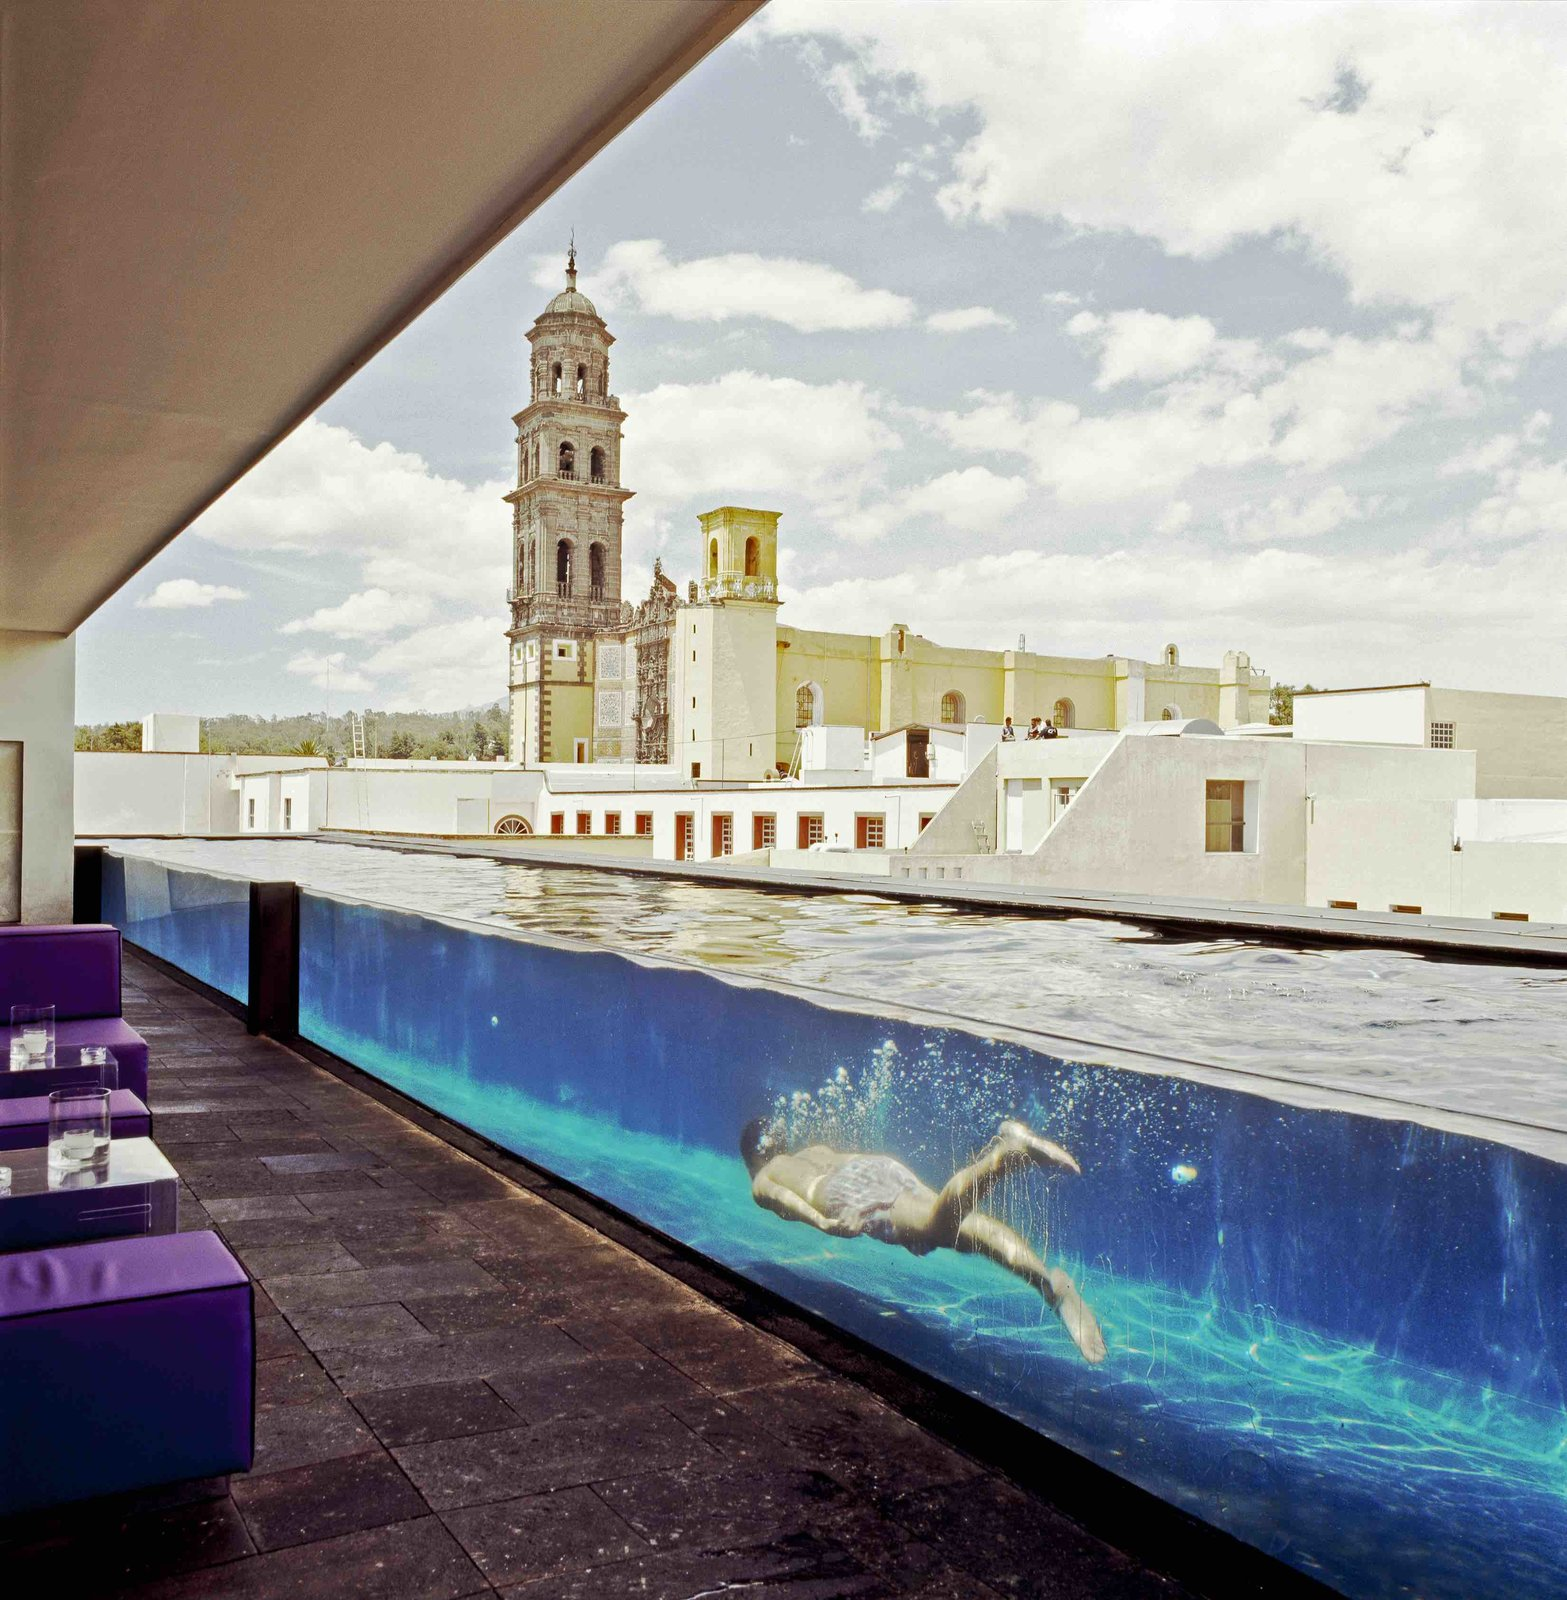 A boutique hotel in a former 19th century water purification faction, sleek glass panels and modern furnishings exist in symbiosis with the old factory walls, stone columns and aqueducts.  Photo 23 of 24 in 12 Modern Hotels in Historic Buildings Around the World